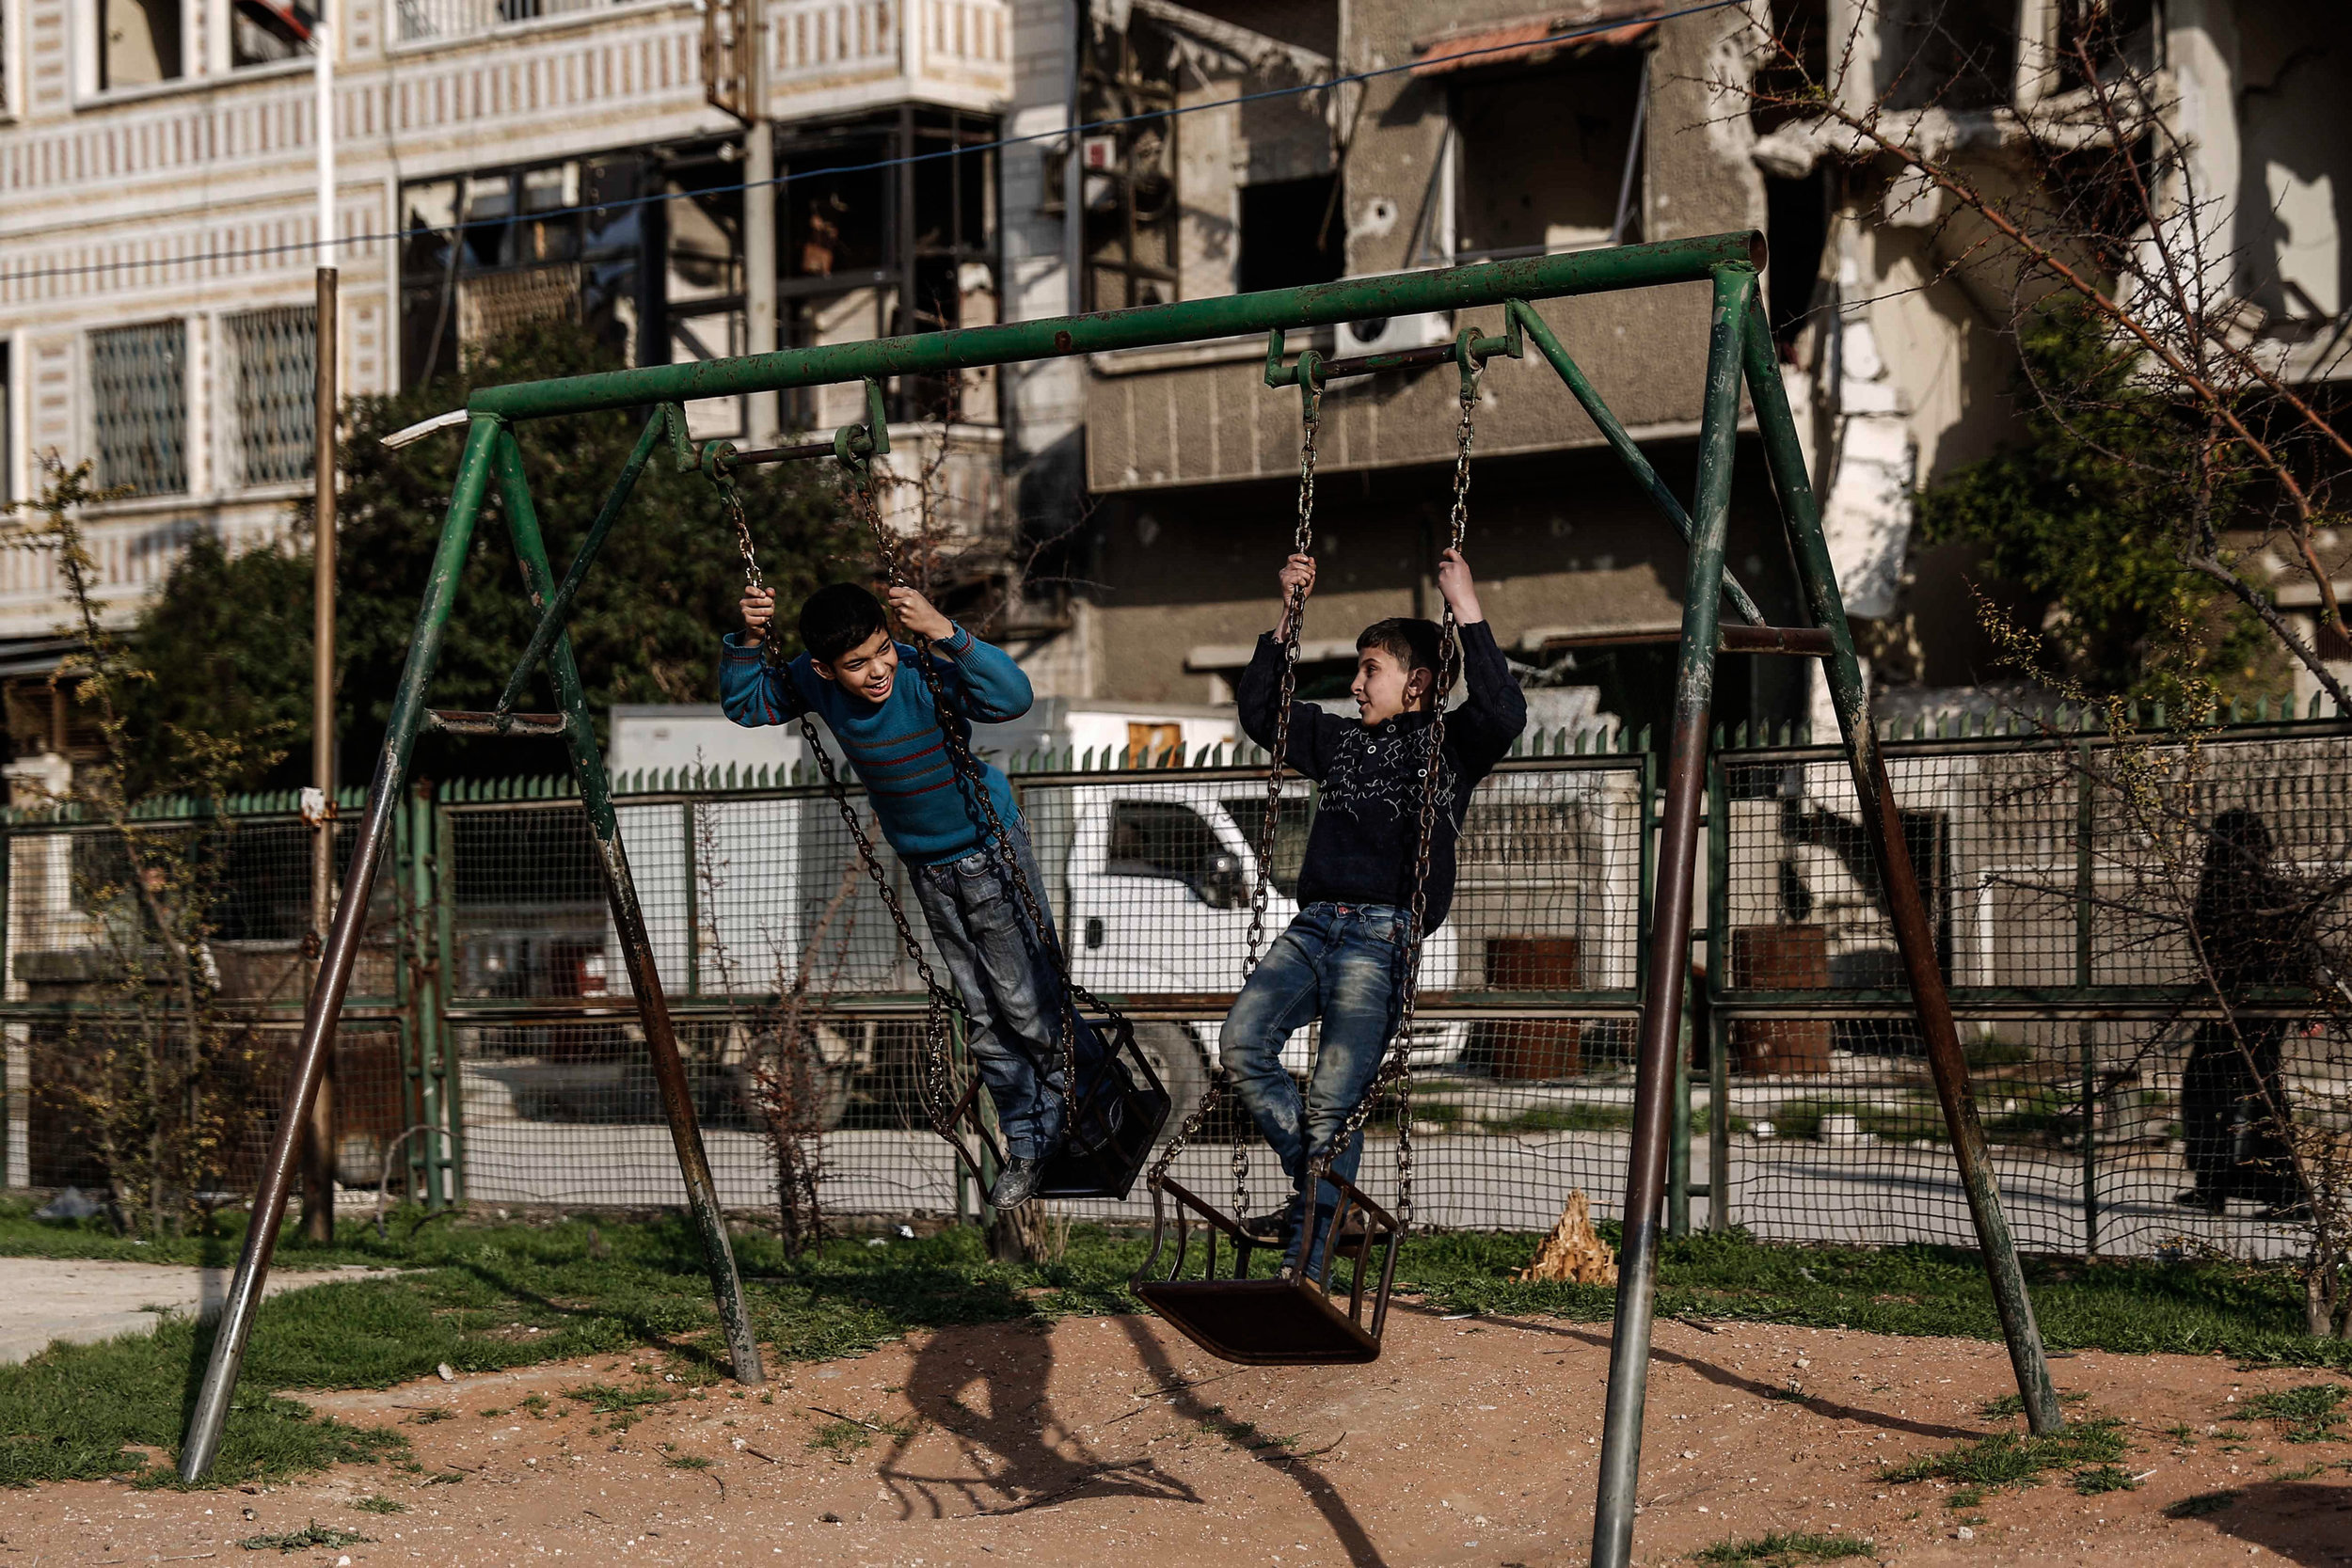 - Children play on a swing at a park in the city of Douma, on the eastern edges of the capital Damascus on February 27, 2016, on the first day of the landmark ceasefire agreement.